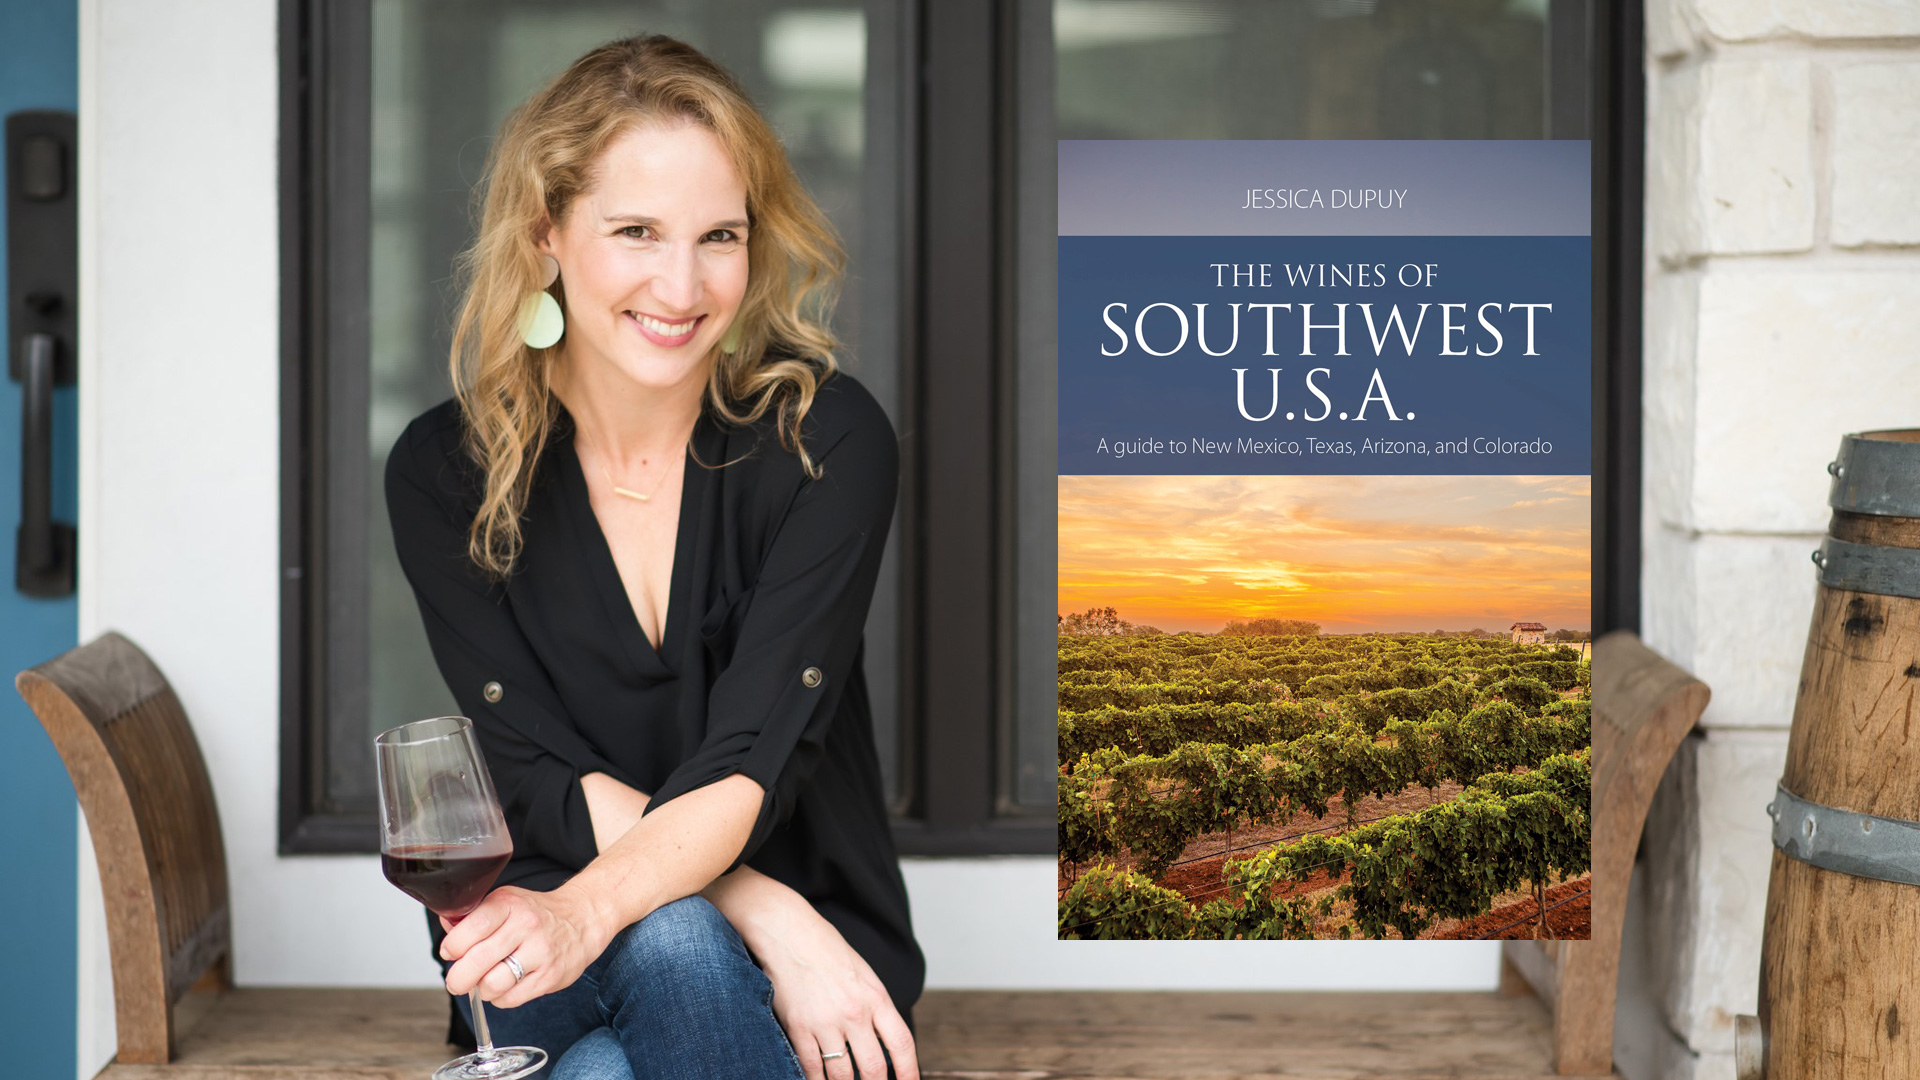 The NOLADrinks Show – Wines of the Southwest USA. Author Jessica Dupuy discussing the wine industry in Arizona, Colorado, New Mexico, and Texas.